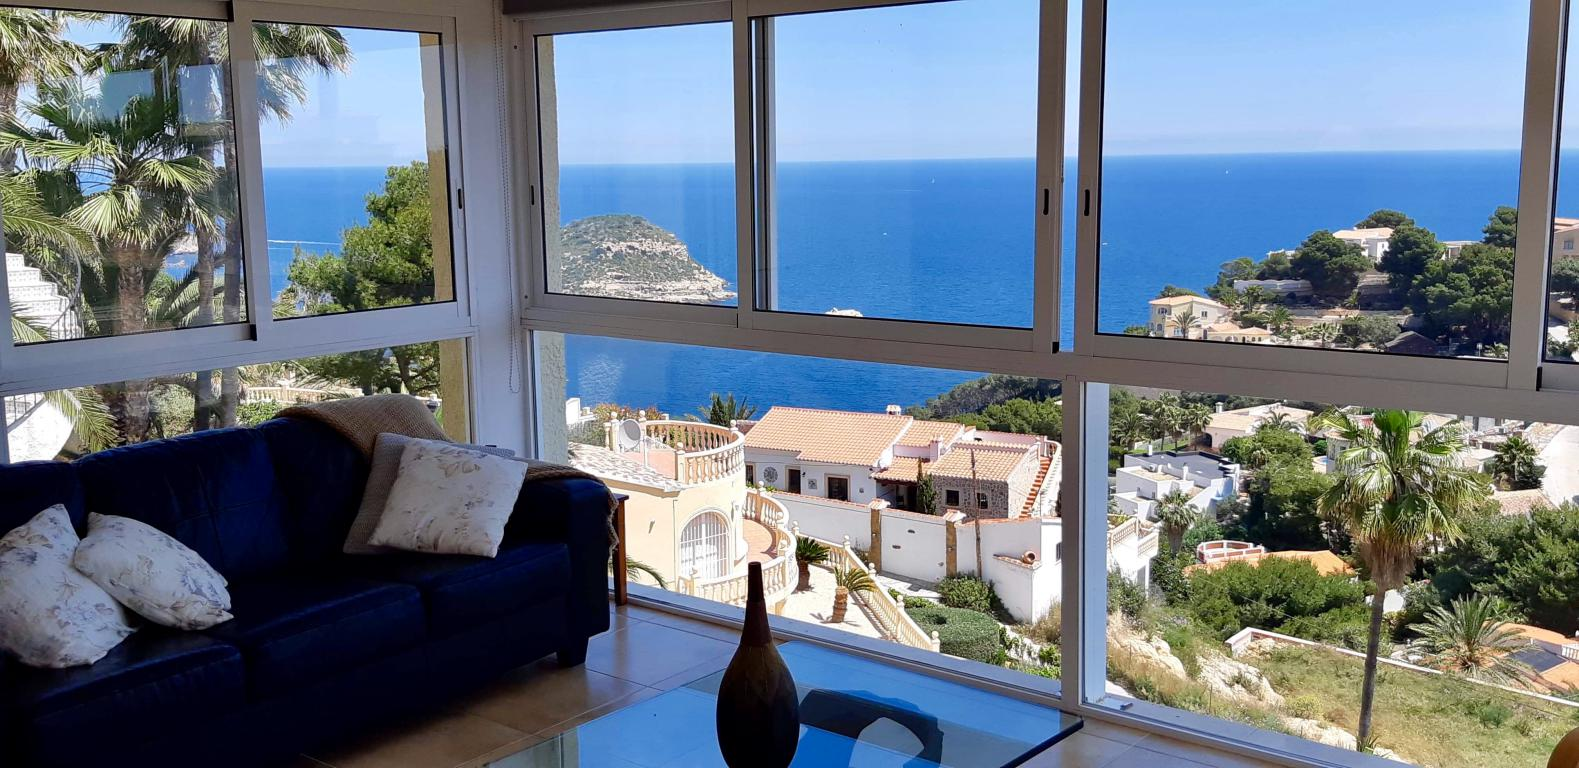 Villa With Stunning Sea and Island Views in Javea